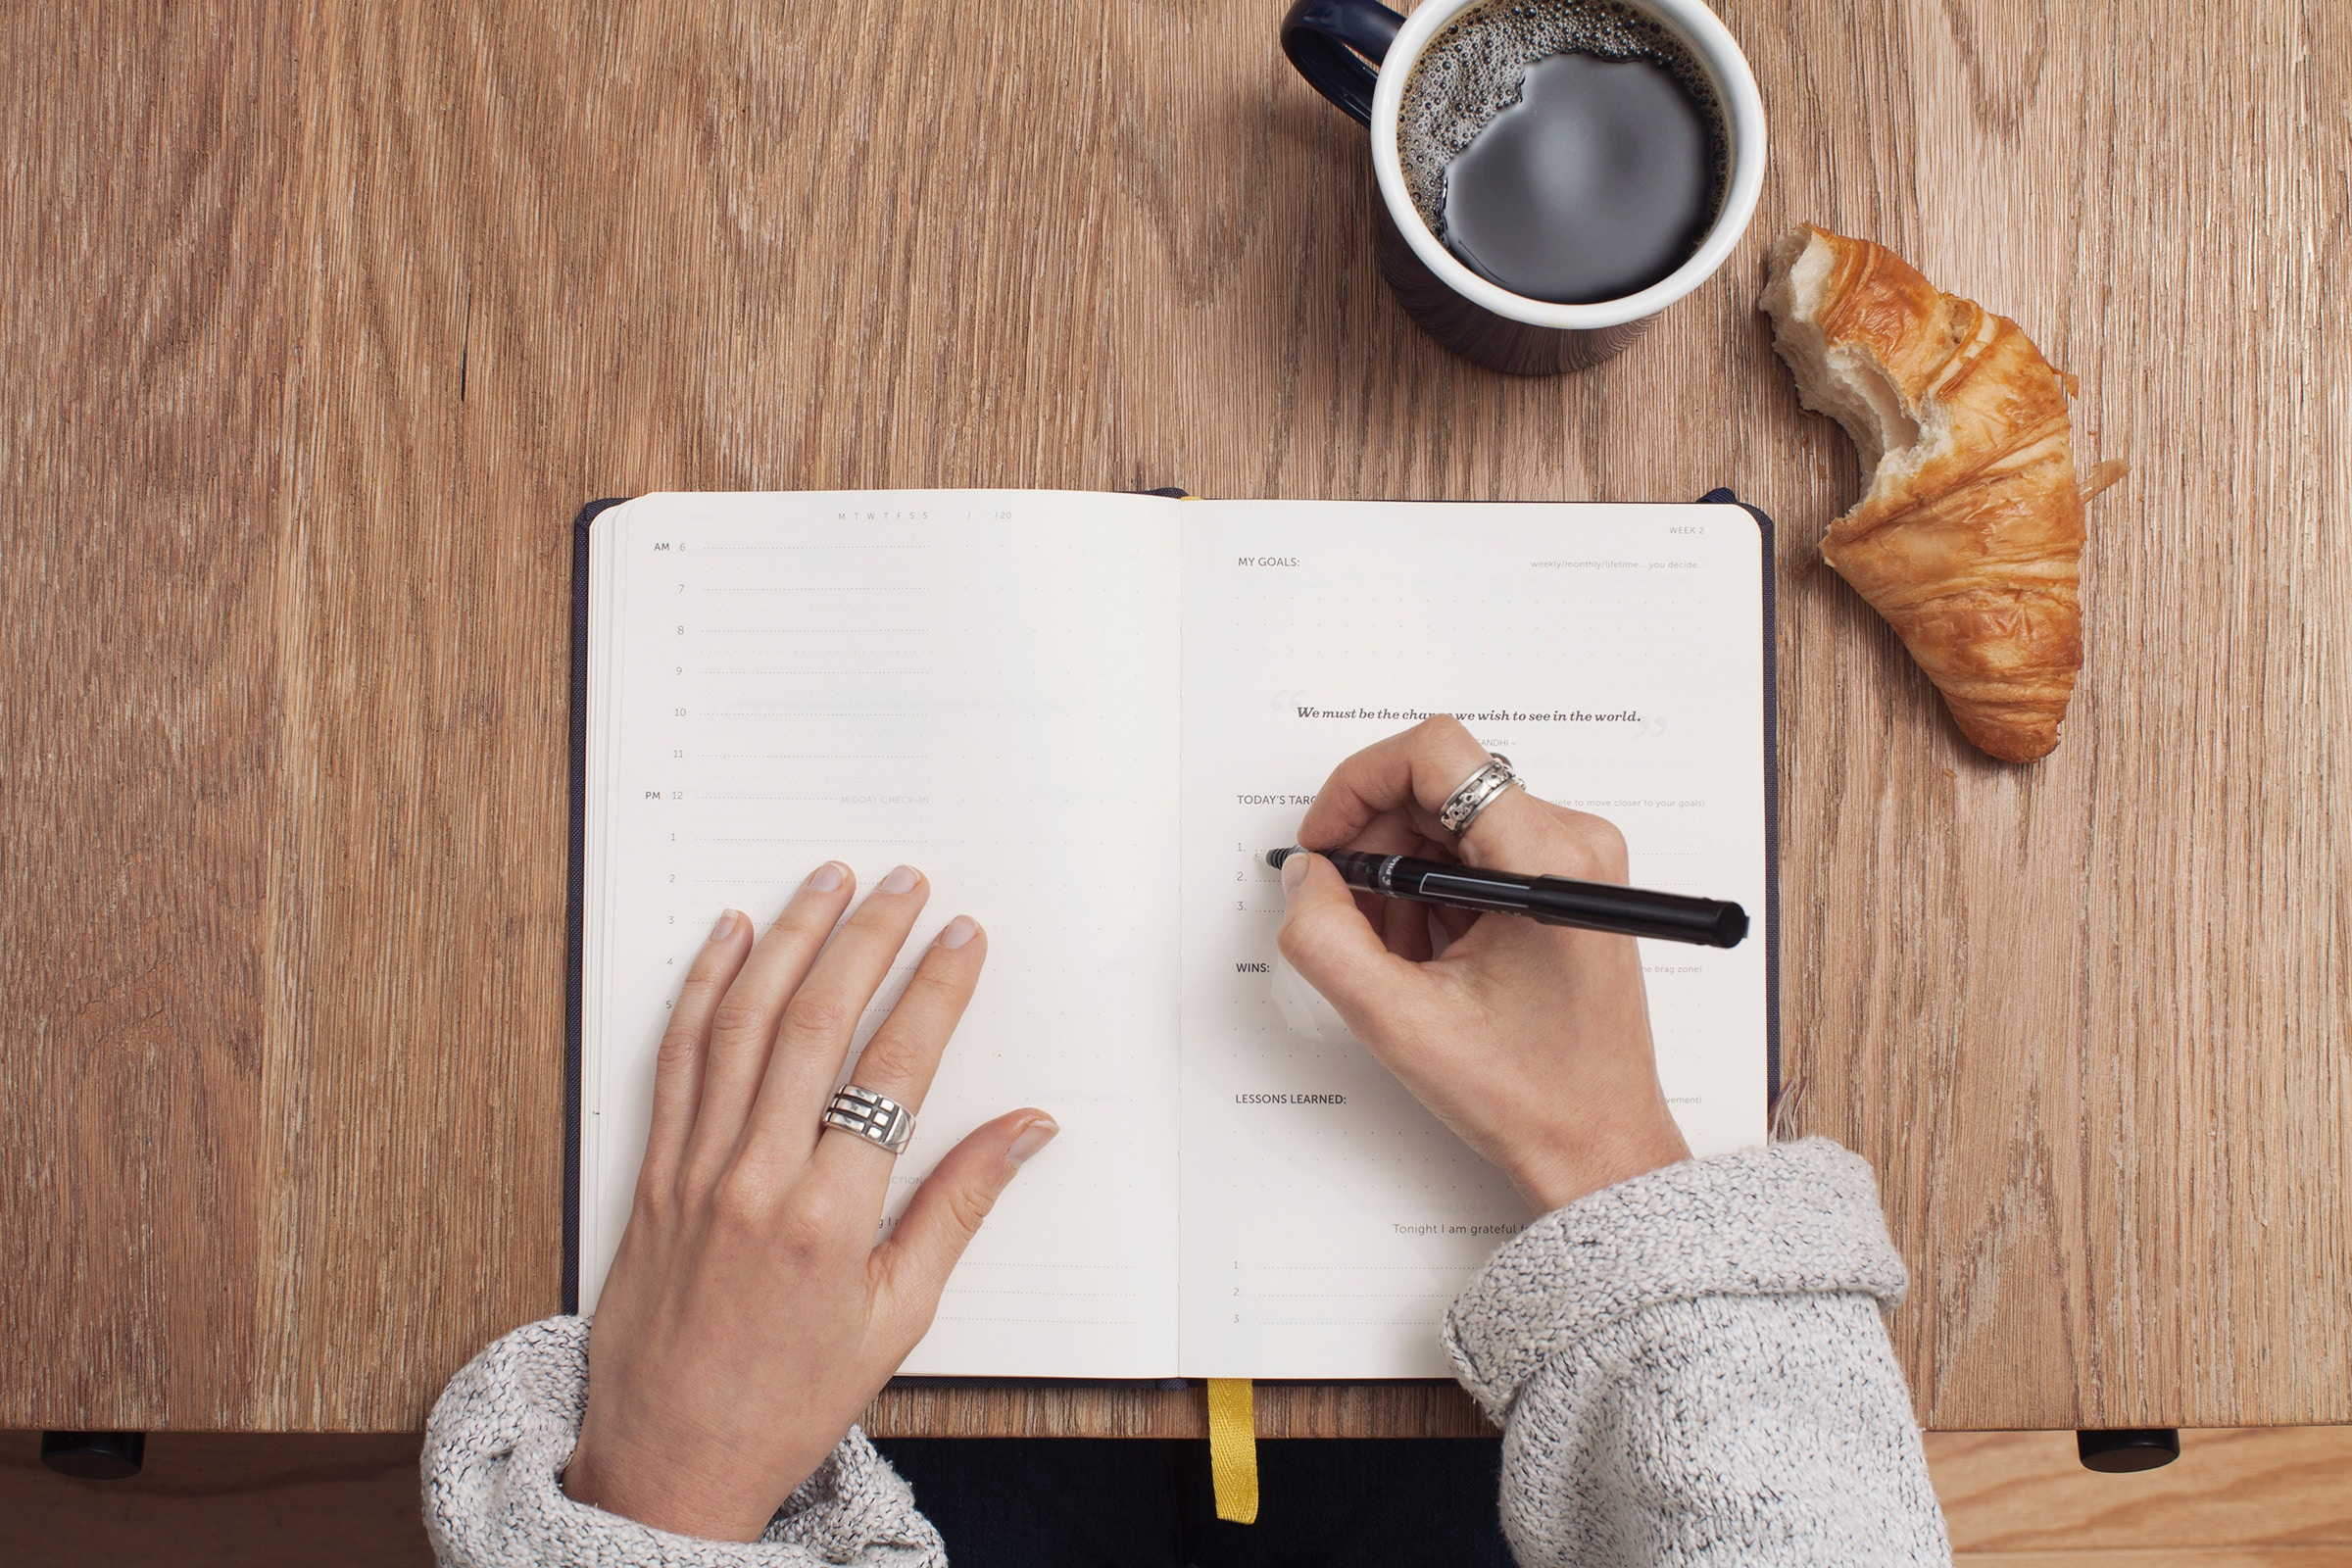 Image of coffee cup, croissant with a bite taken out of it, a planner, and a woman with a pen beginning to write in the planner.